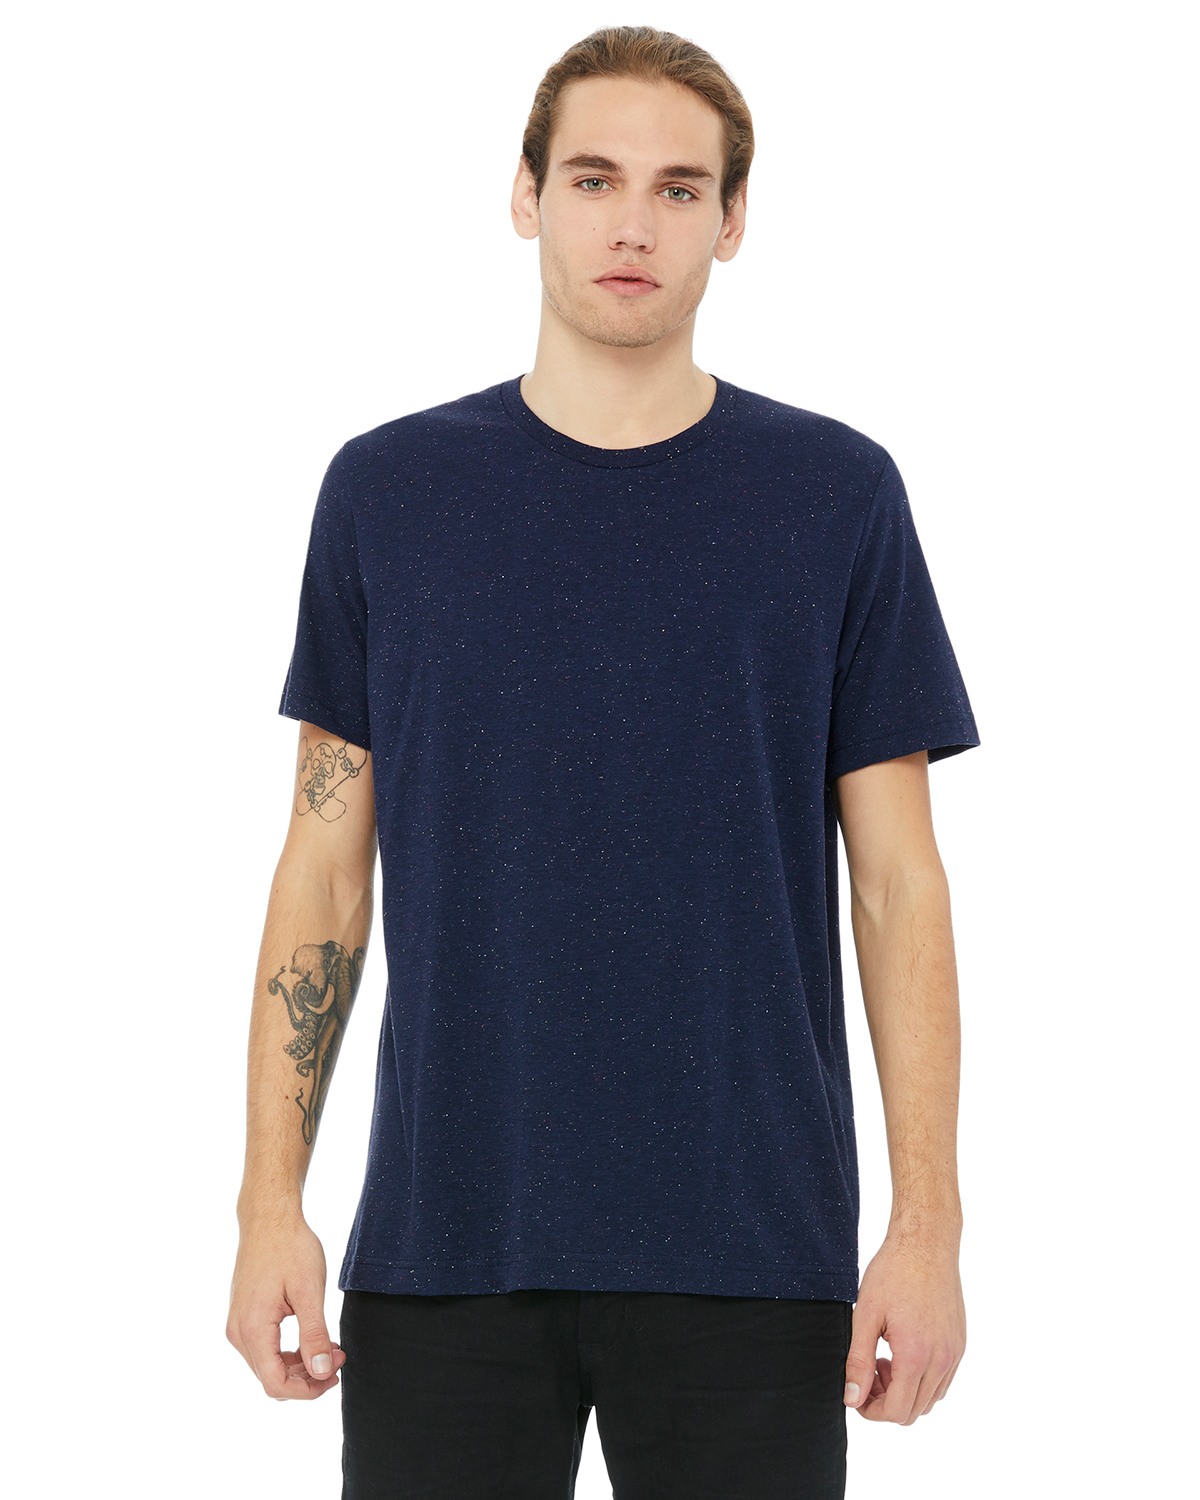 click to view Navy Speckled